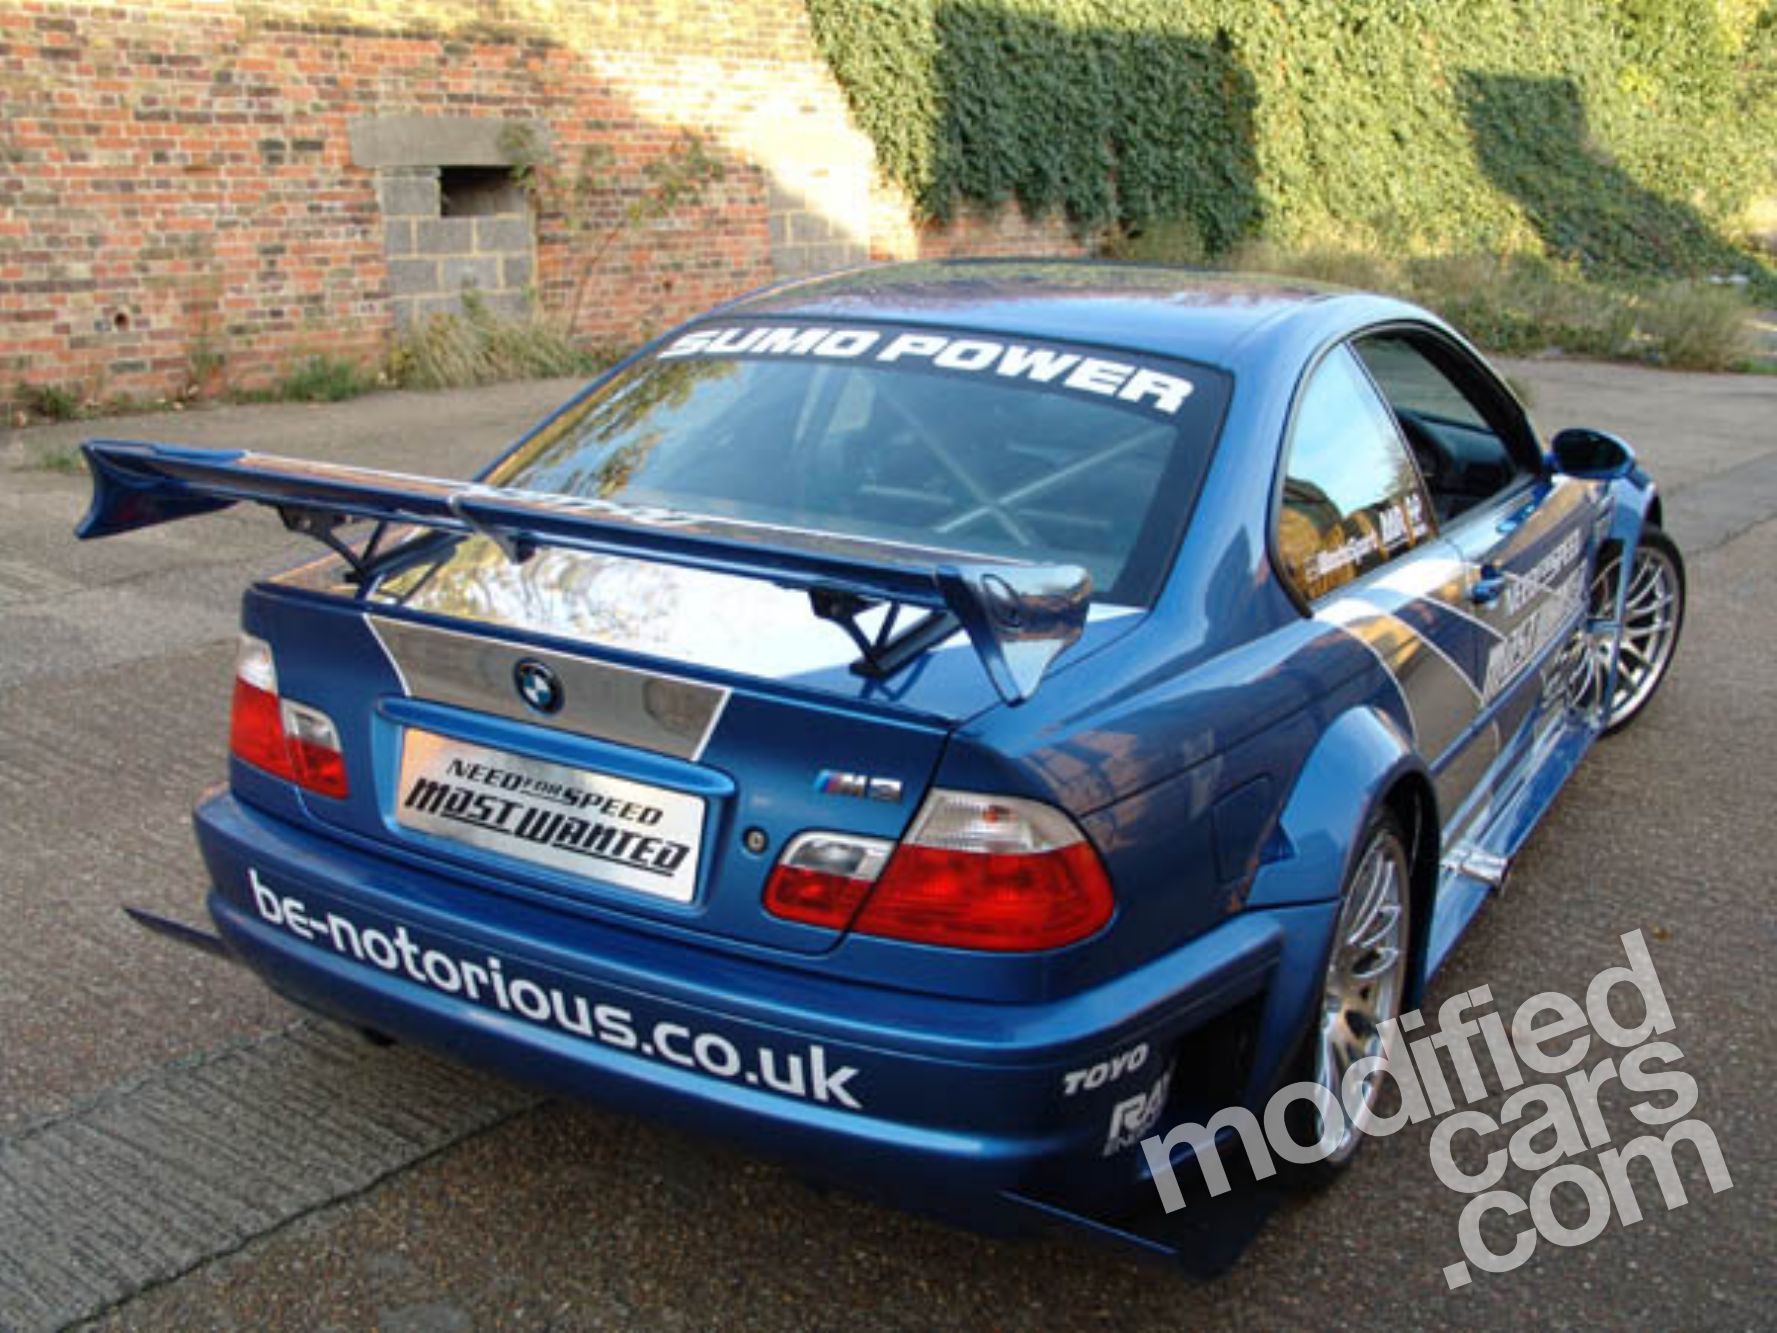 Sumo Power Bmw E46 M3 Gtr Was Built For Ea Games Autoevolution